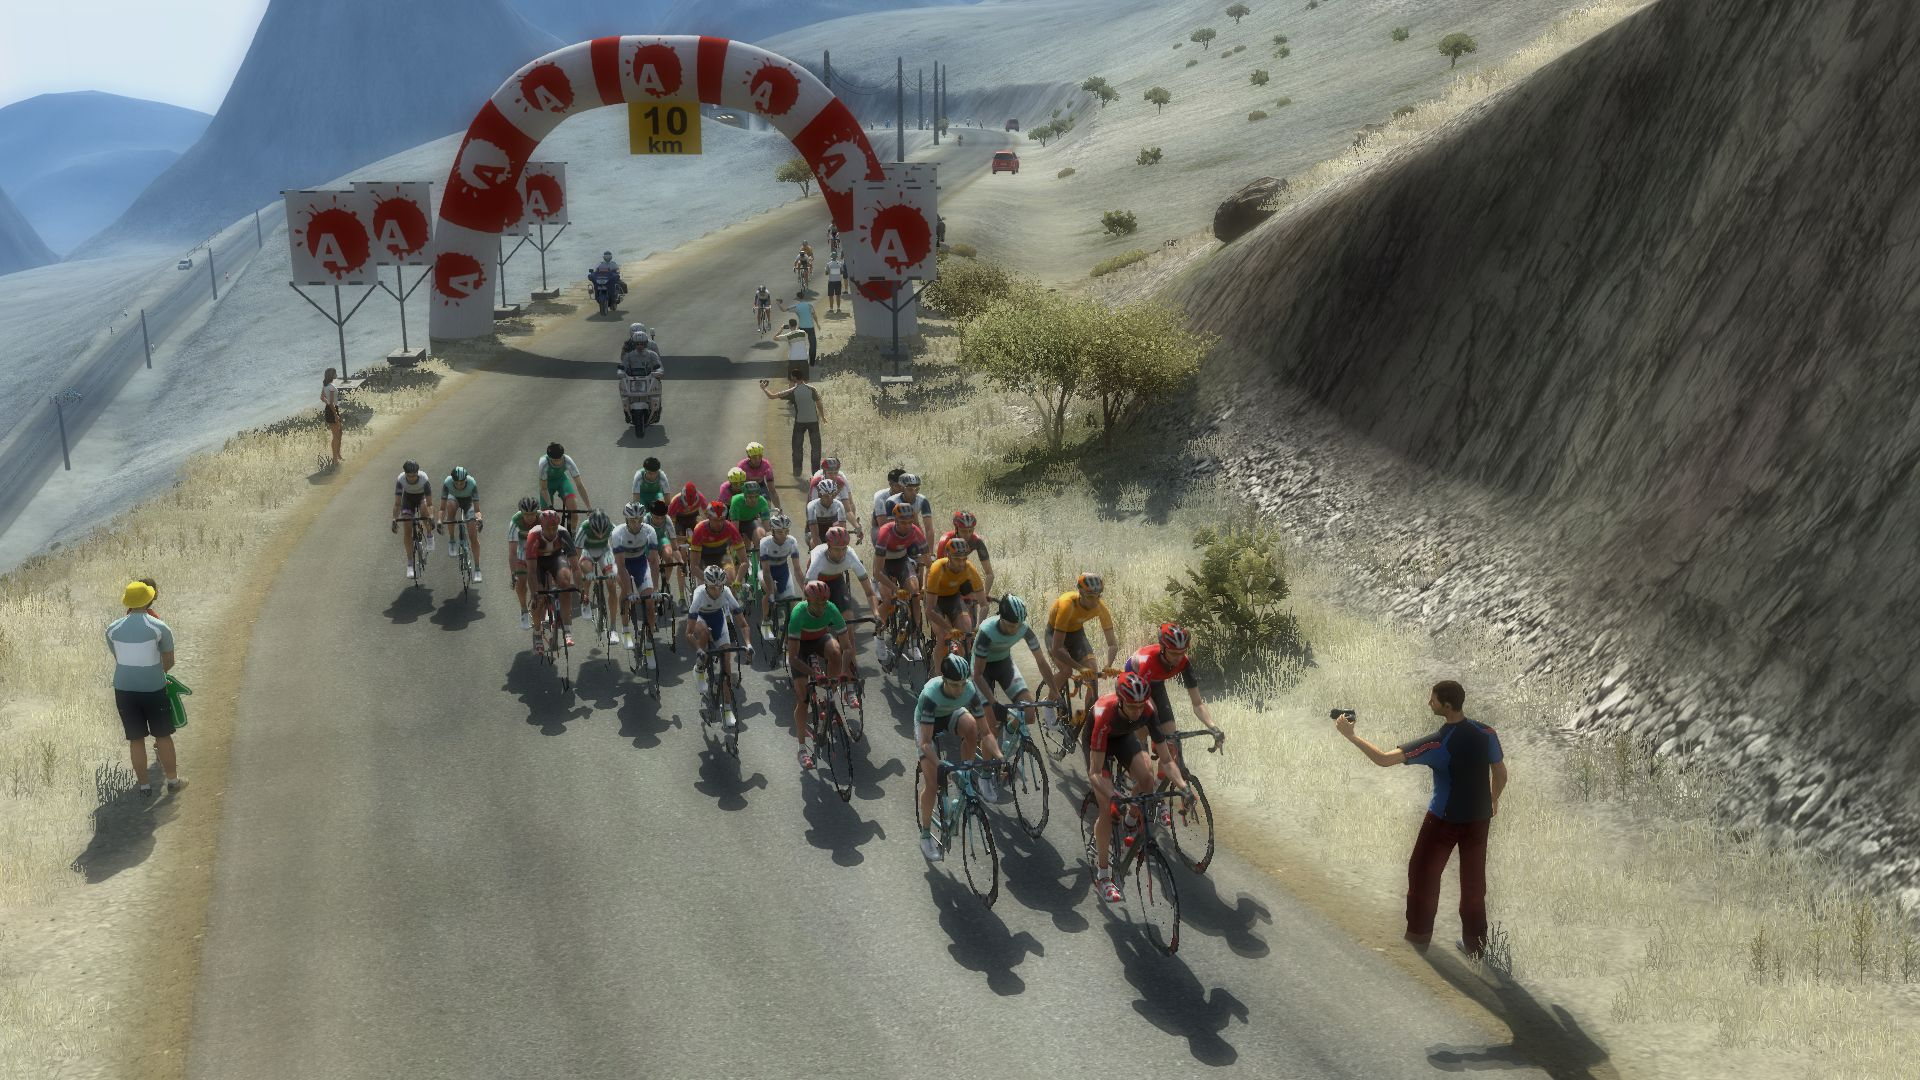 pcmdaily.com/images/mg/2019/Races/C2HC/Eritrea/TOES3%2014.jpg